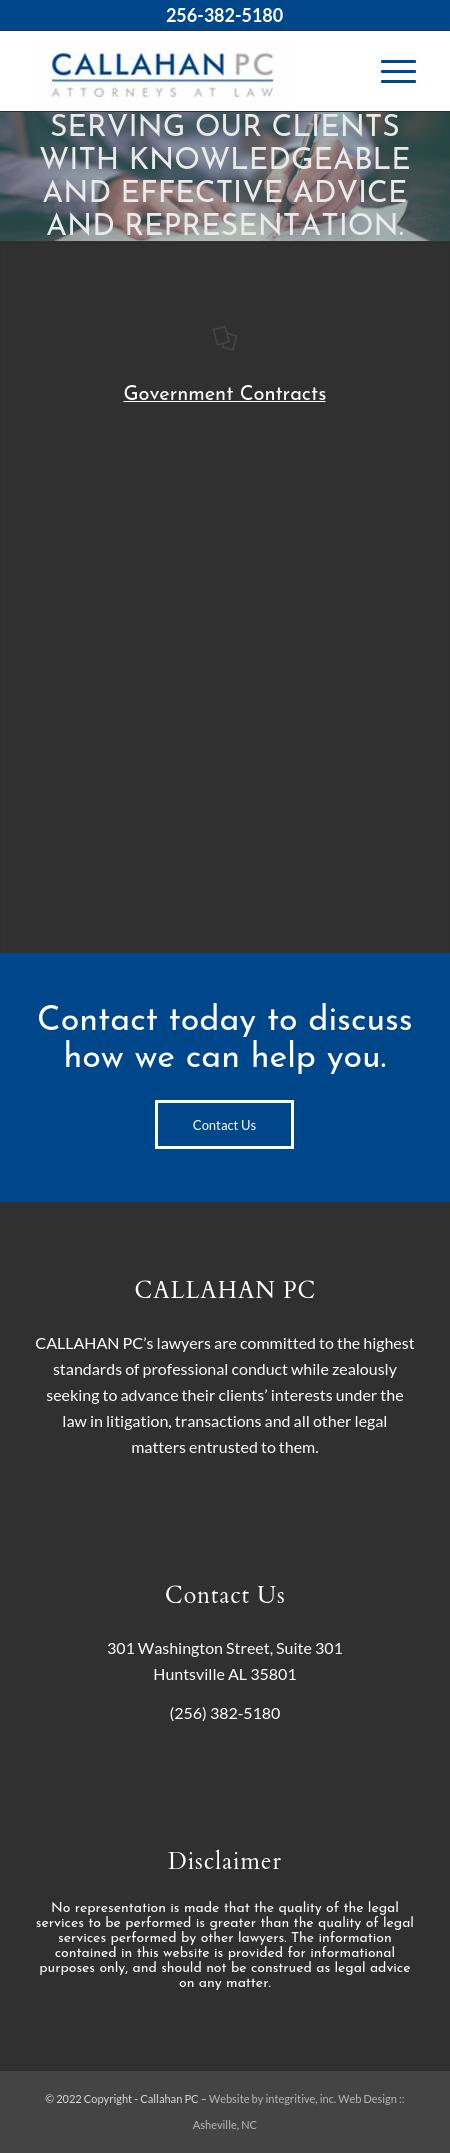 Callahan PC Attorneys At Law - Huntsville AL Lawyers